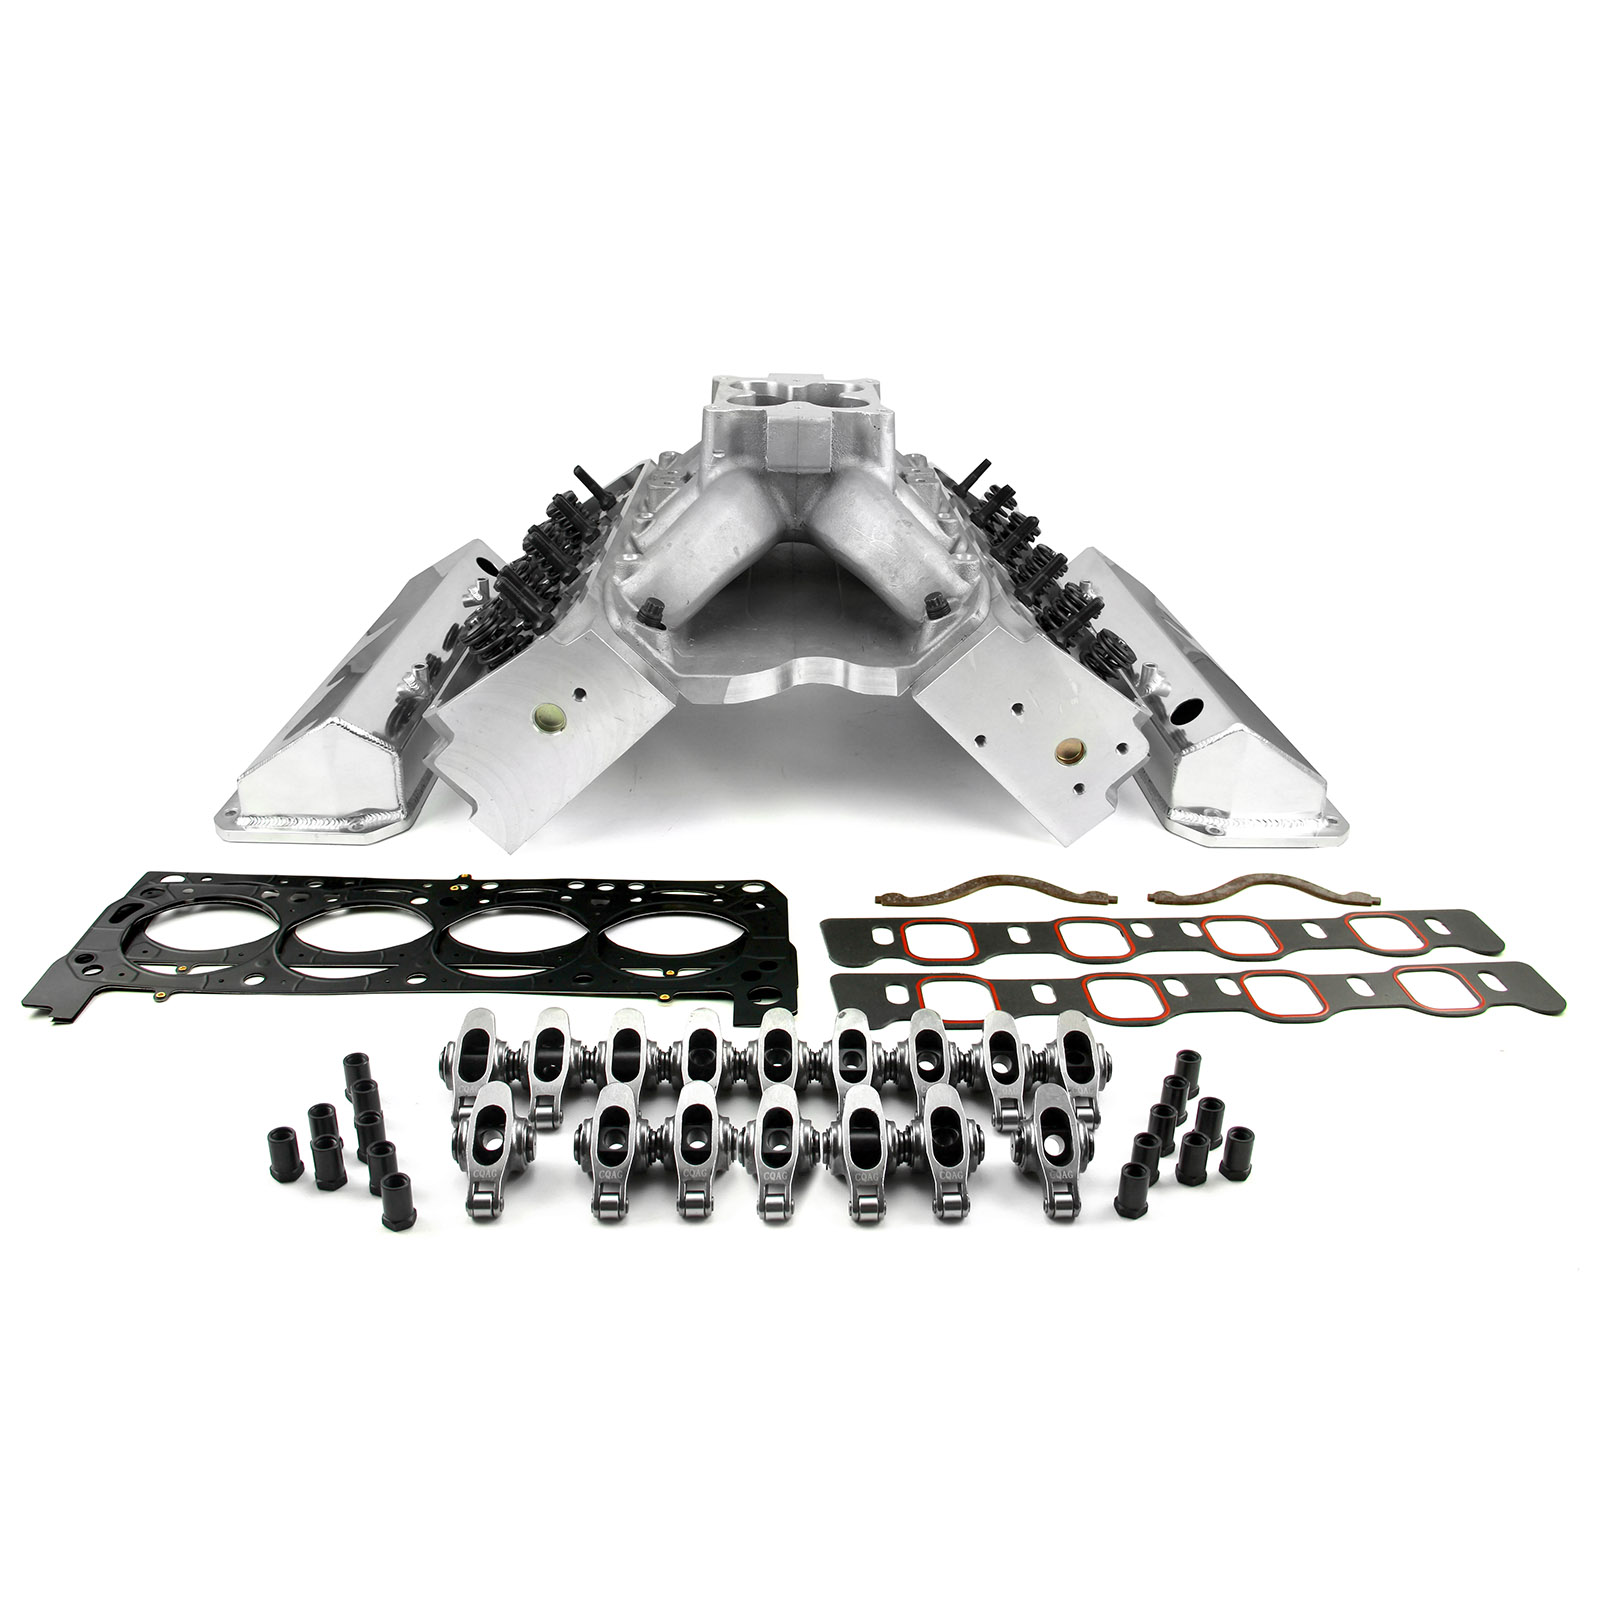 PCE® PCE435.1057 Ford 351W 9.5 Deck Fusion Manifold Hyd FT Cylinder Head Top End Engine Combo Kit